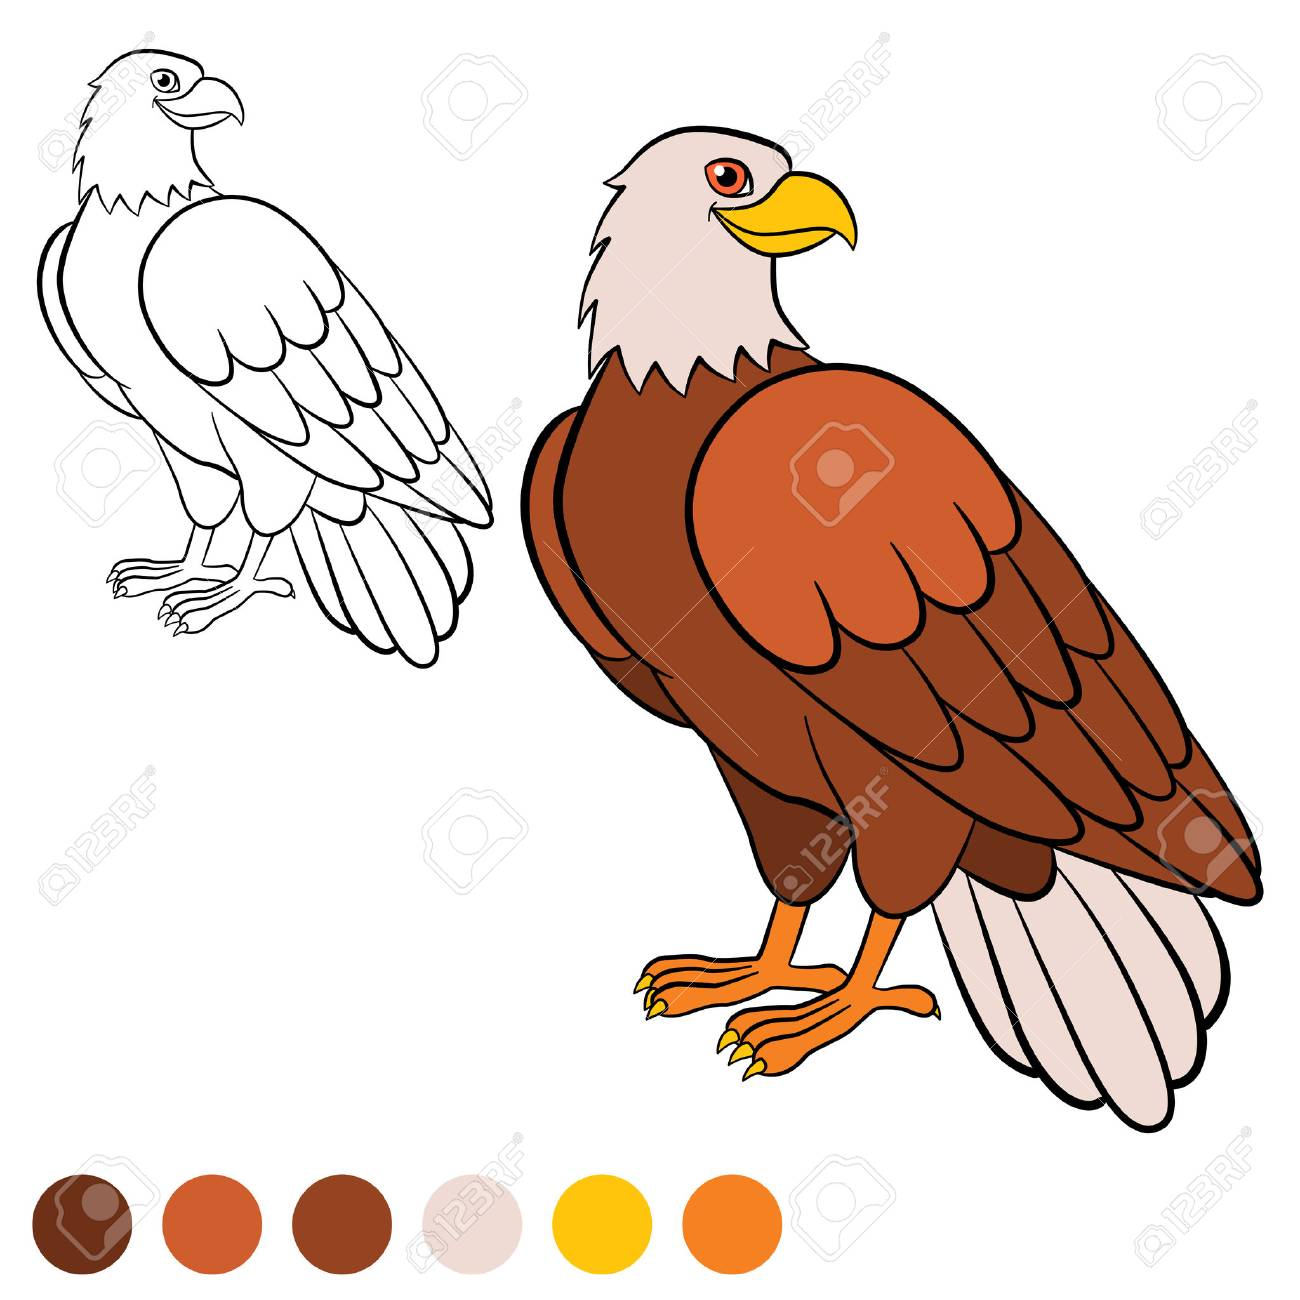 Coloring Page. Color Me: Eagle. Cute Bald Eagle Sits And Smiles ...